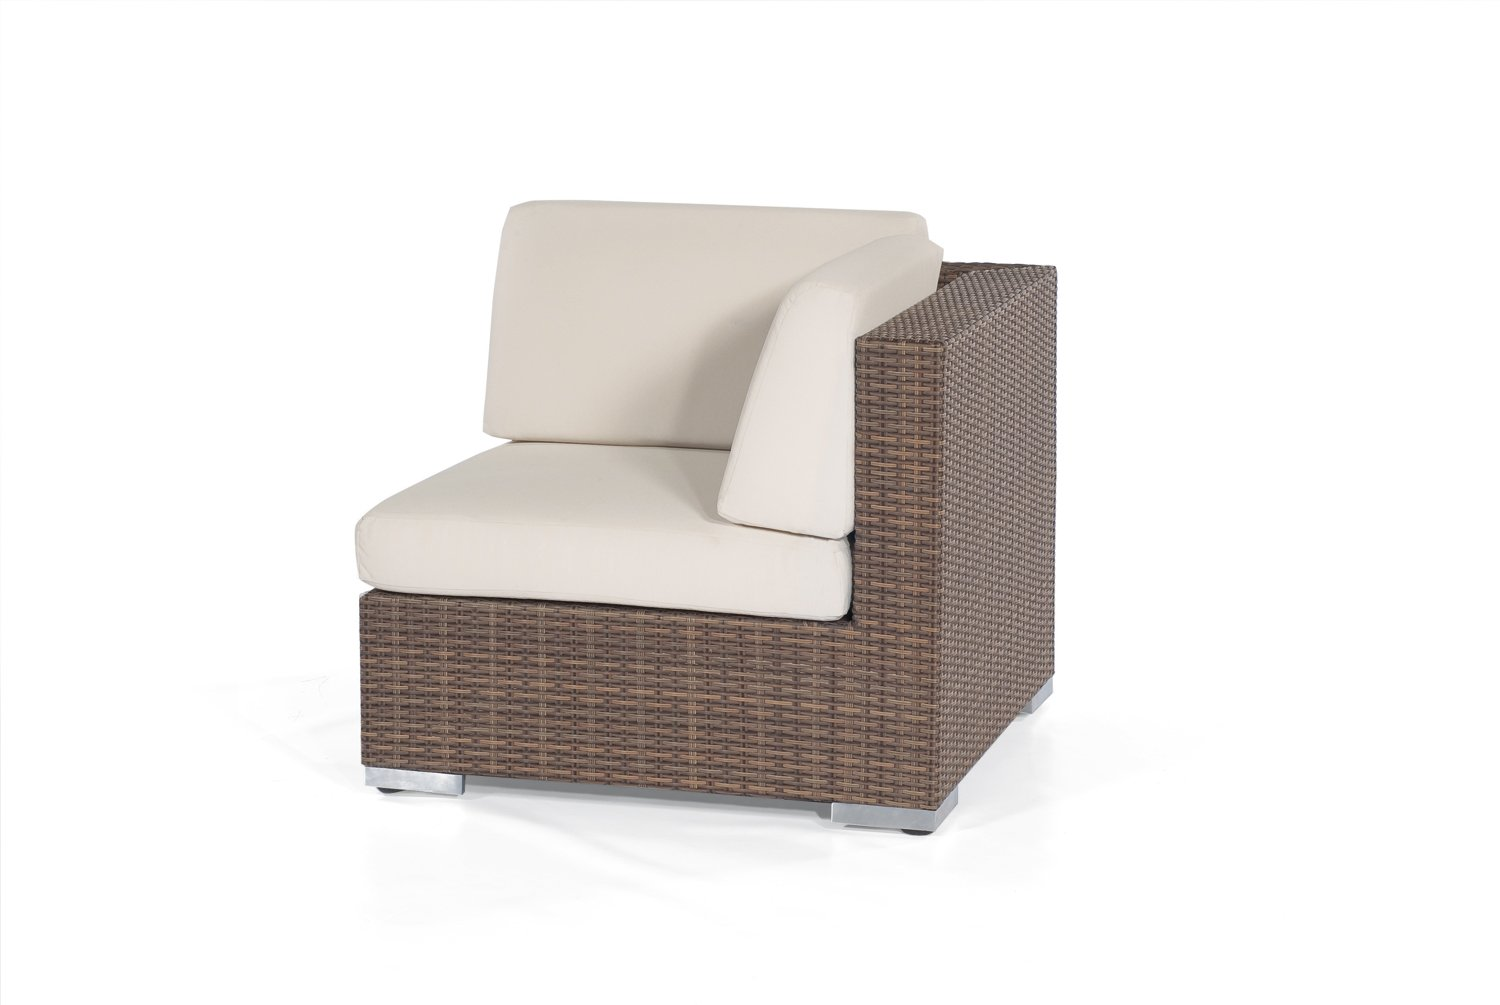 Lounge Eckmodul Residence cappuccino